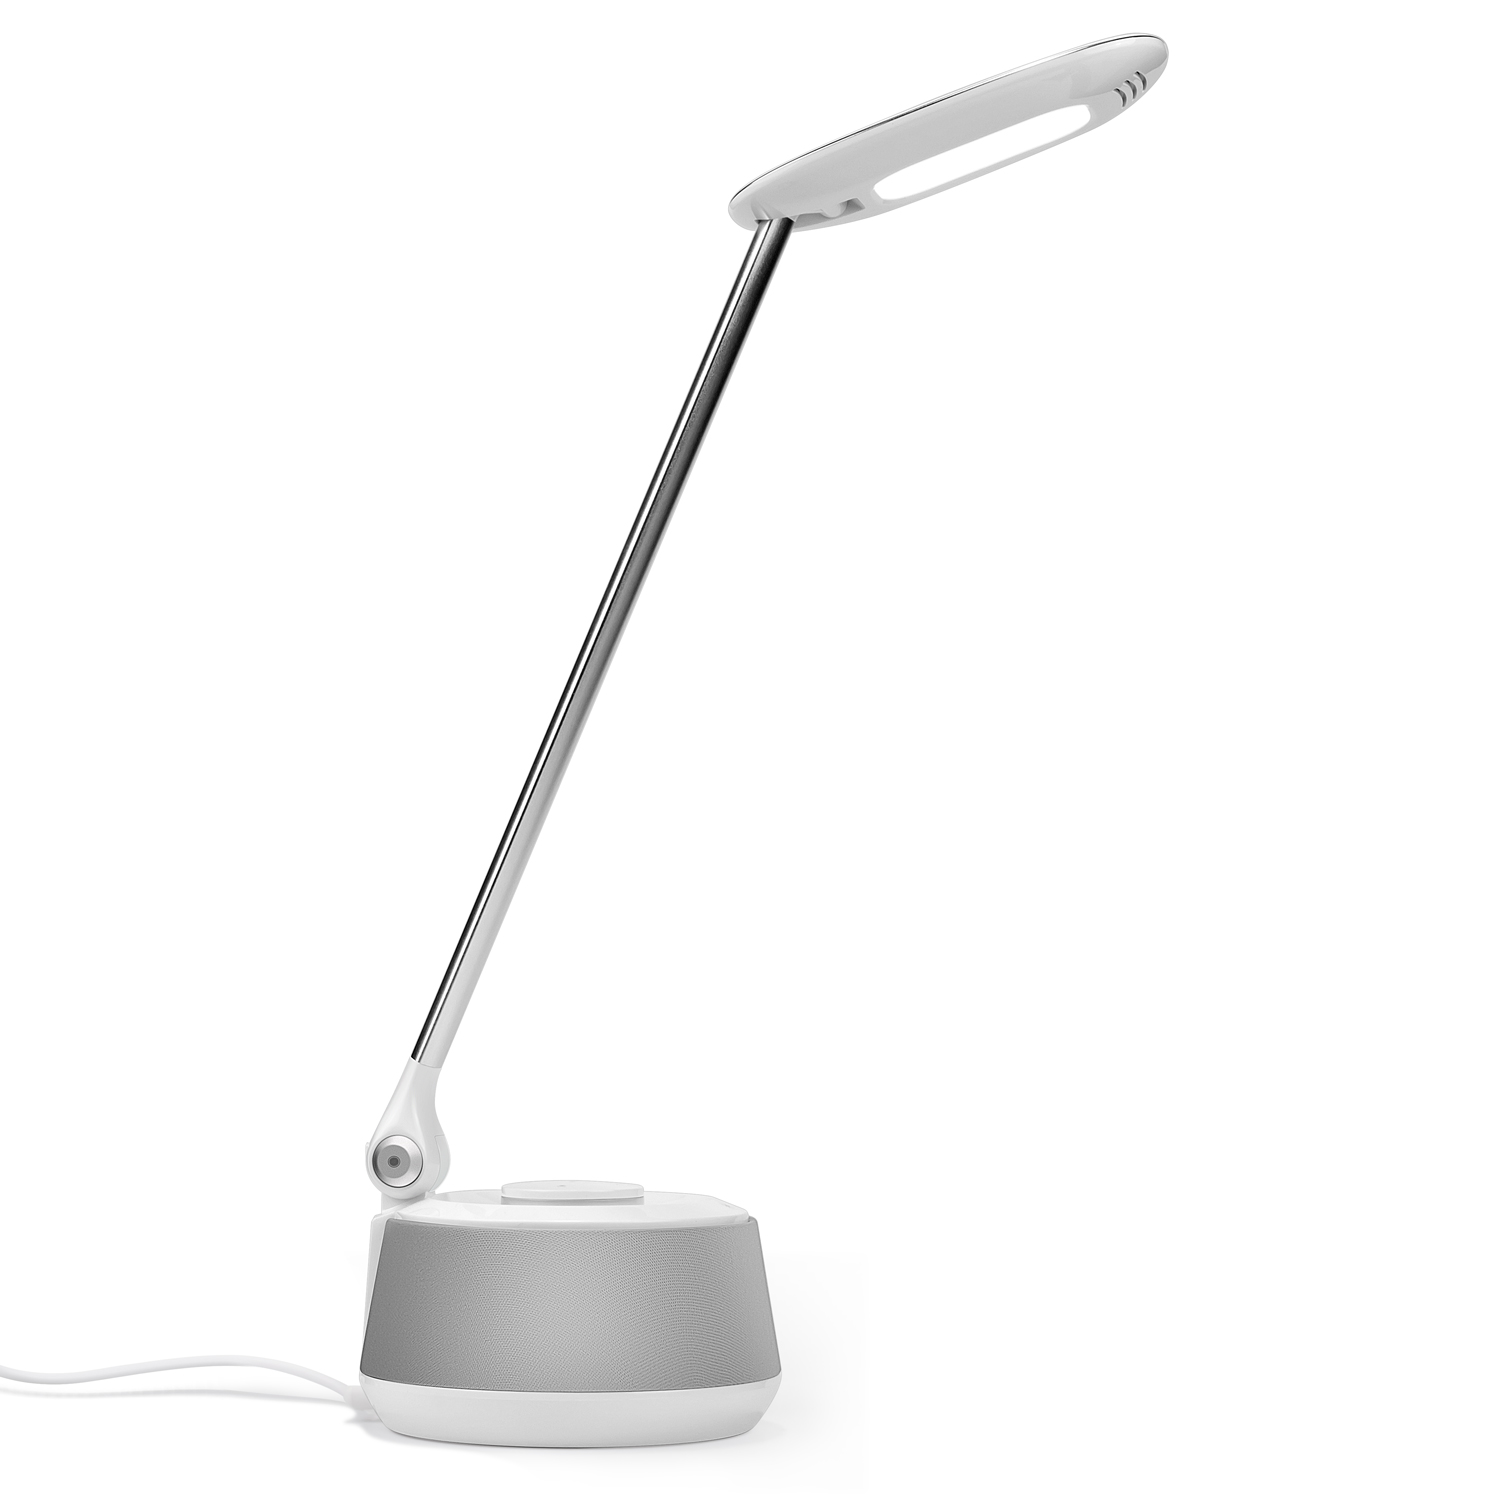 Led Bluetooth Speaker Desk Lamp August Lec630 With Integrated